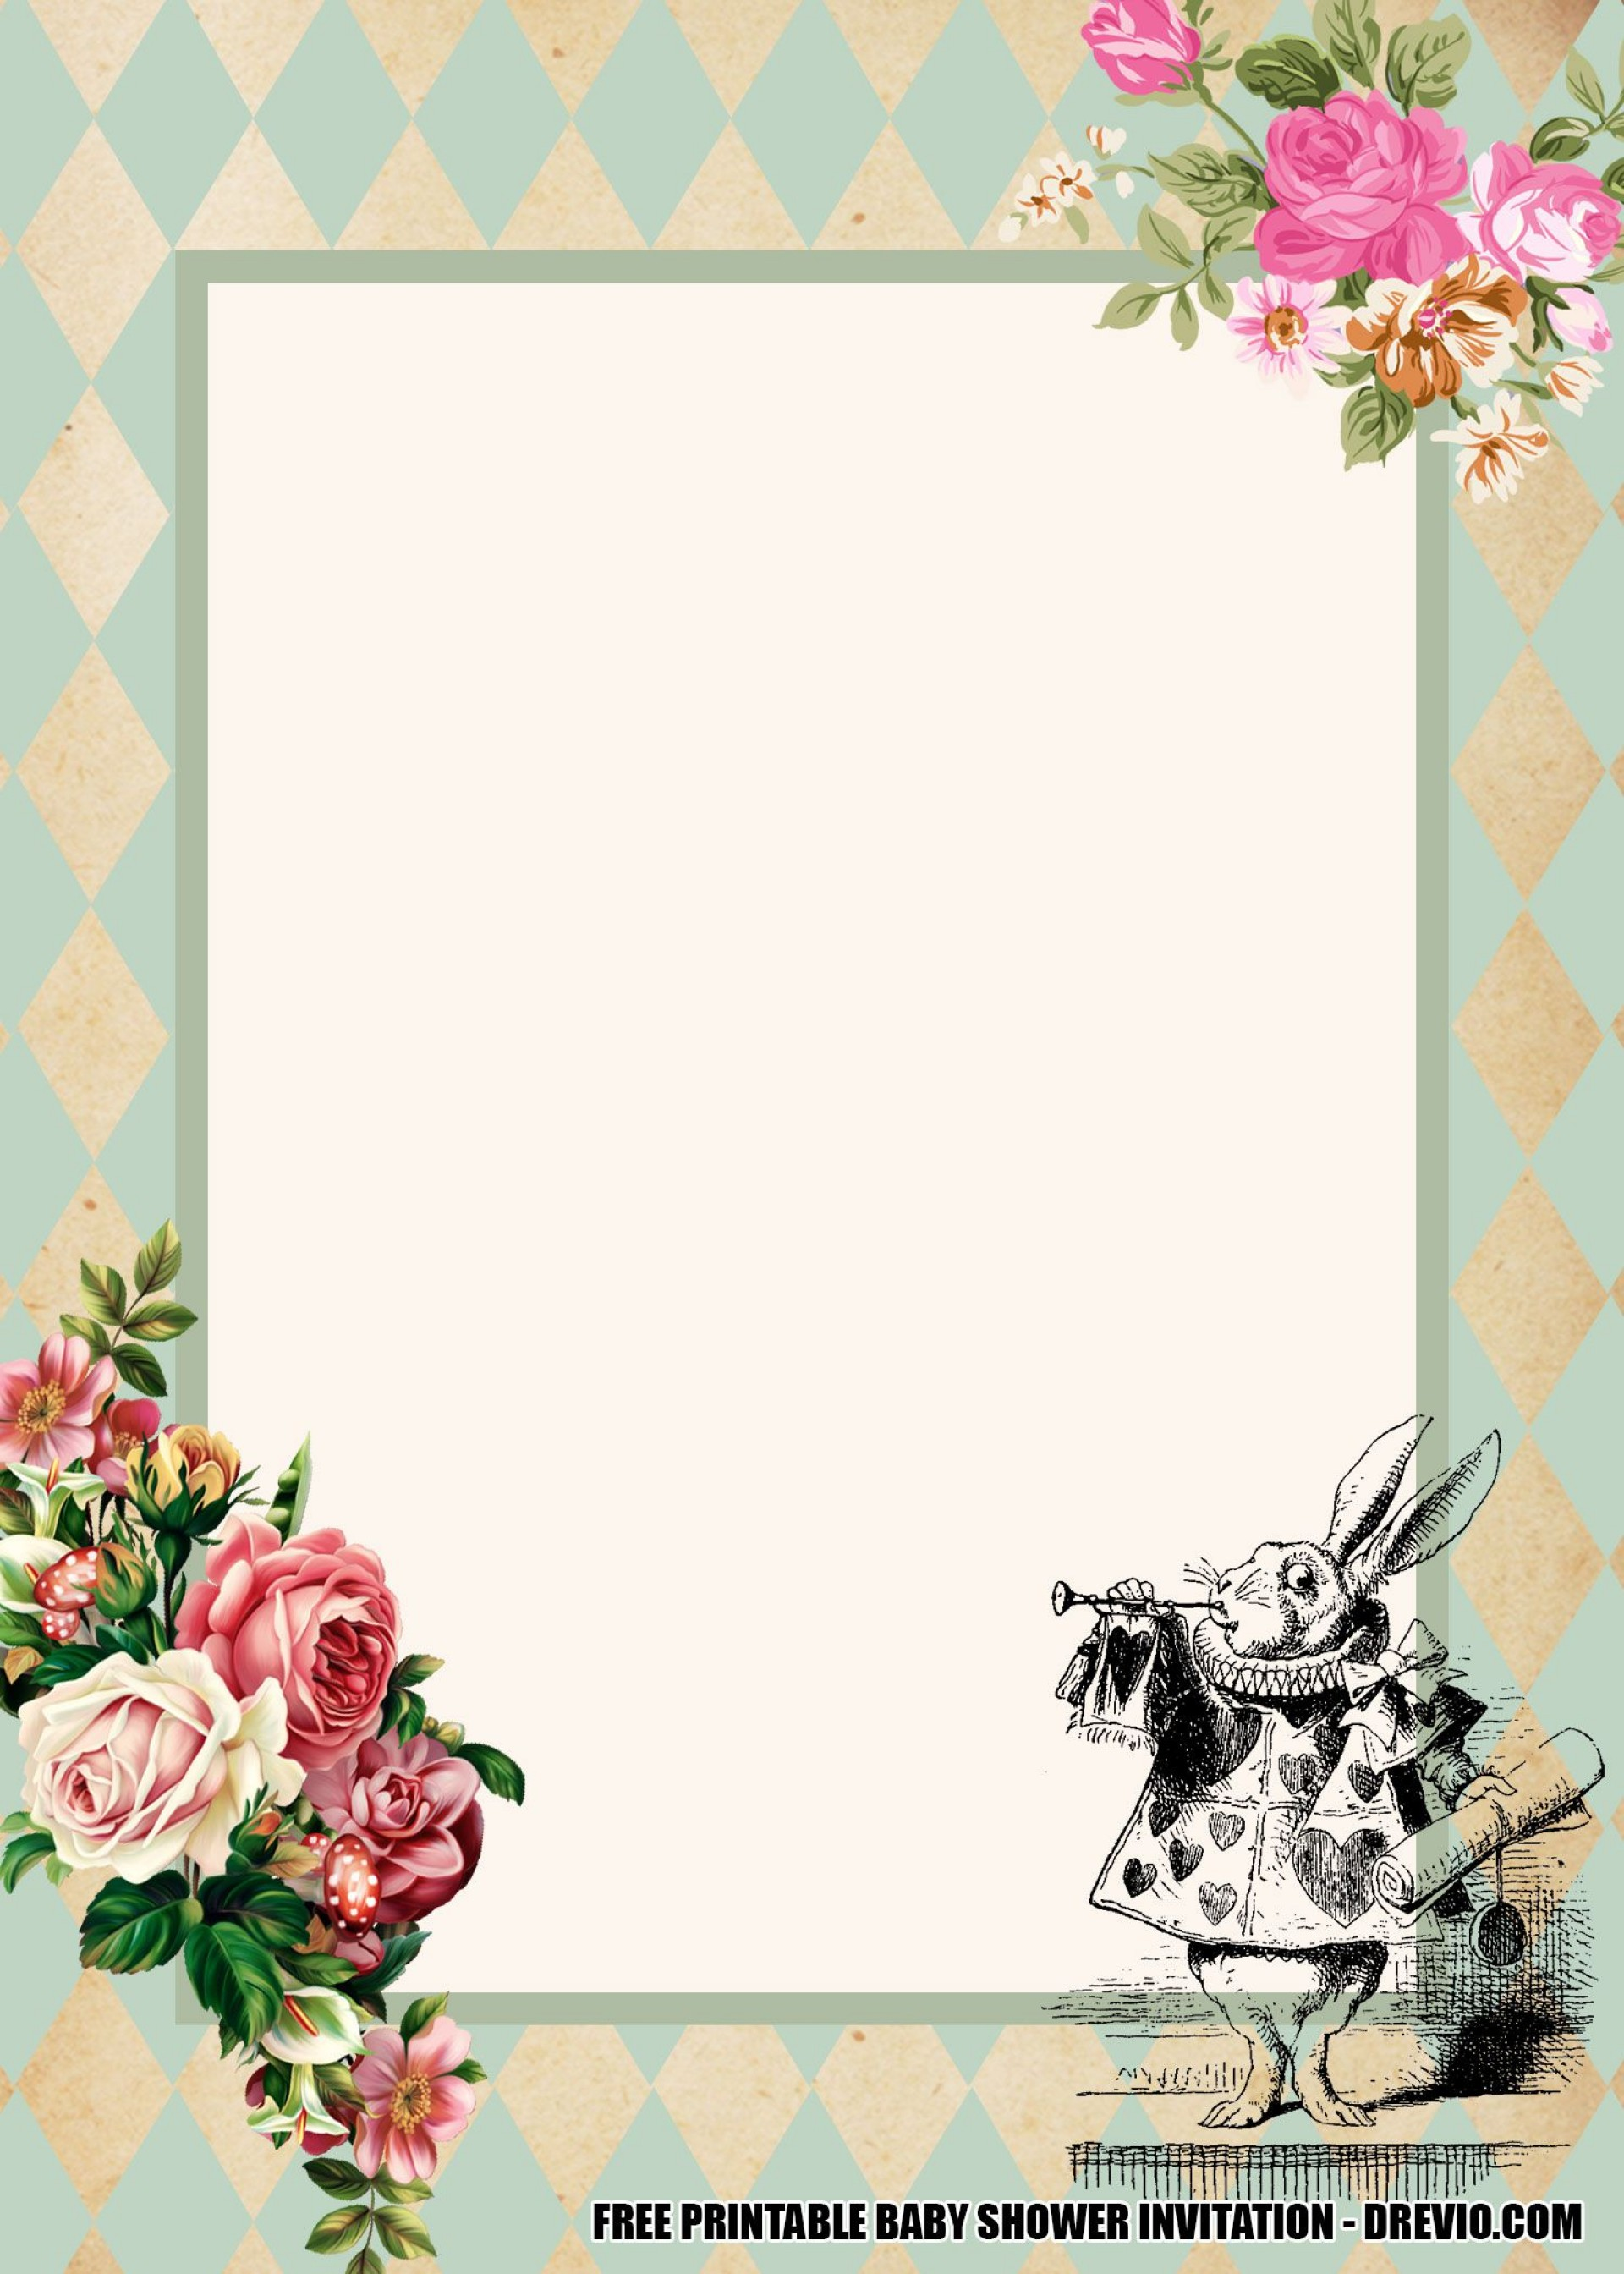 007 Formidable Alice In Wonderland Invite Template Highest Quality  Party Invitation Free1920